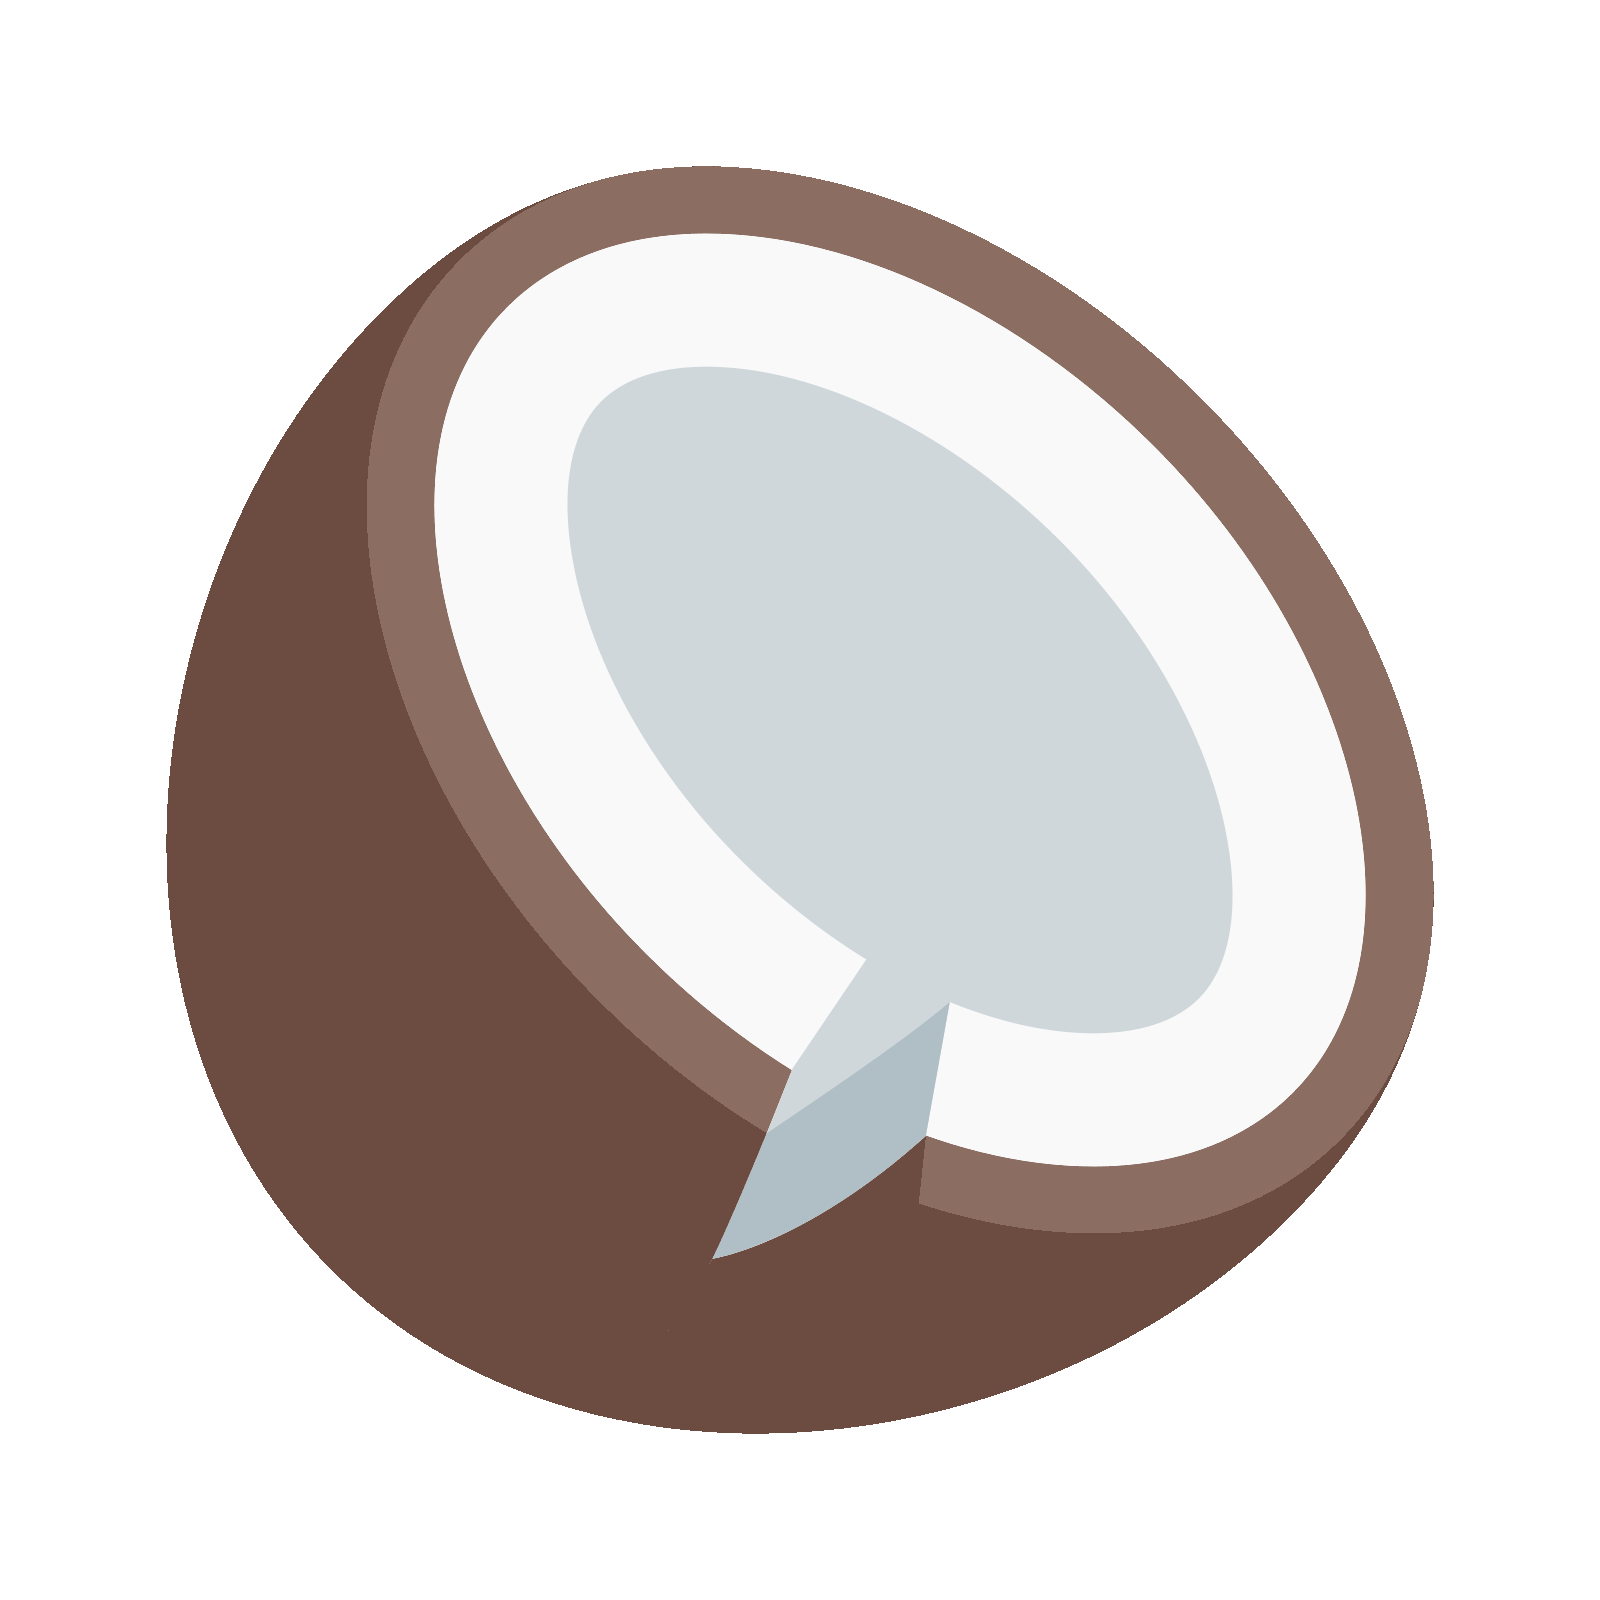 Coco png. Coconut icon free download